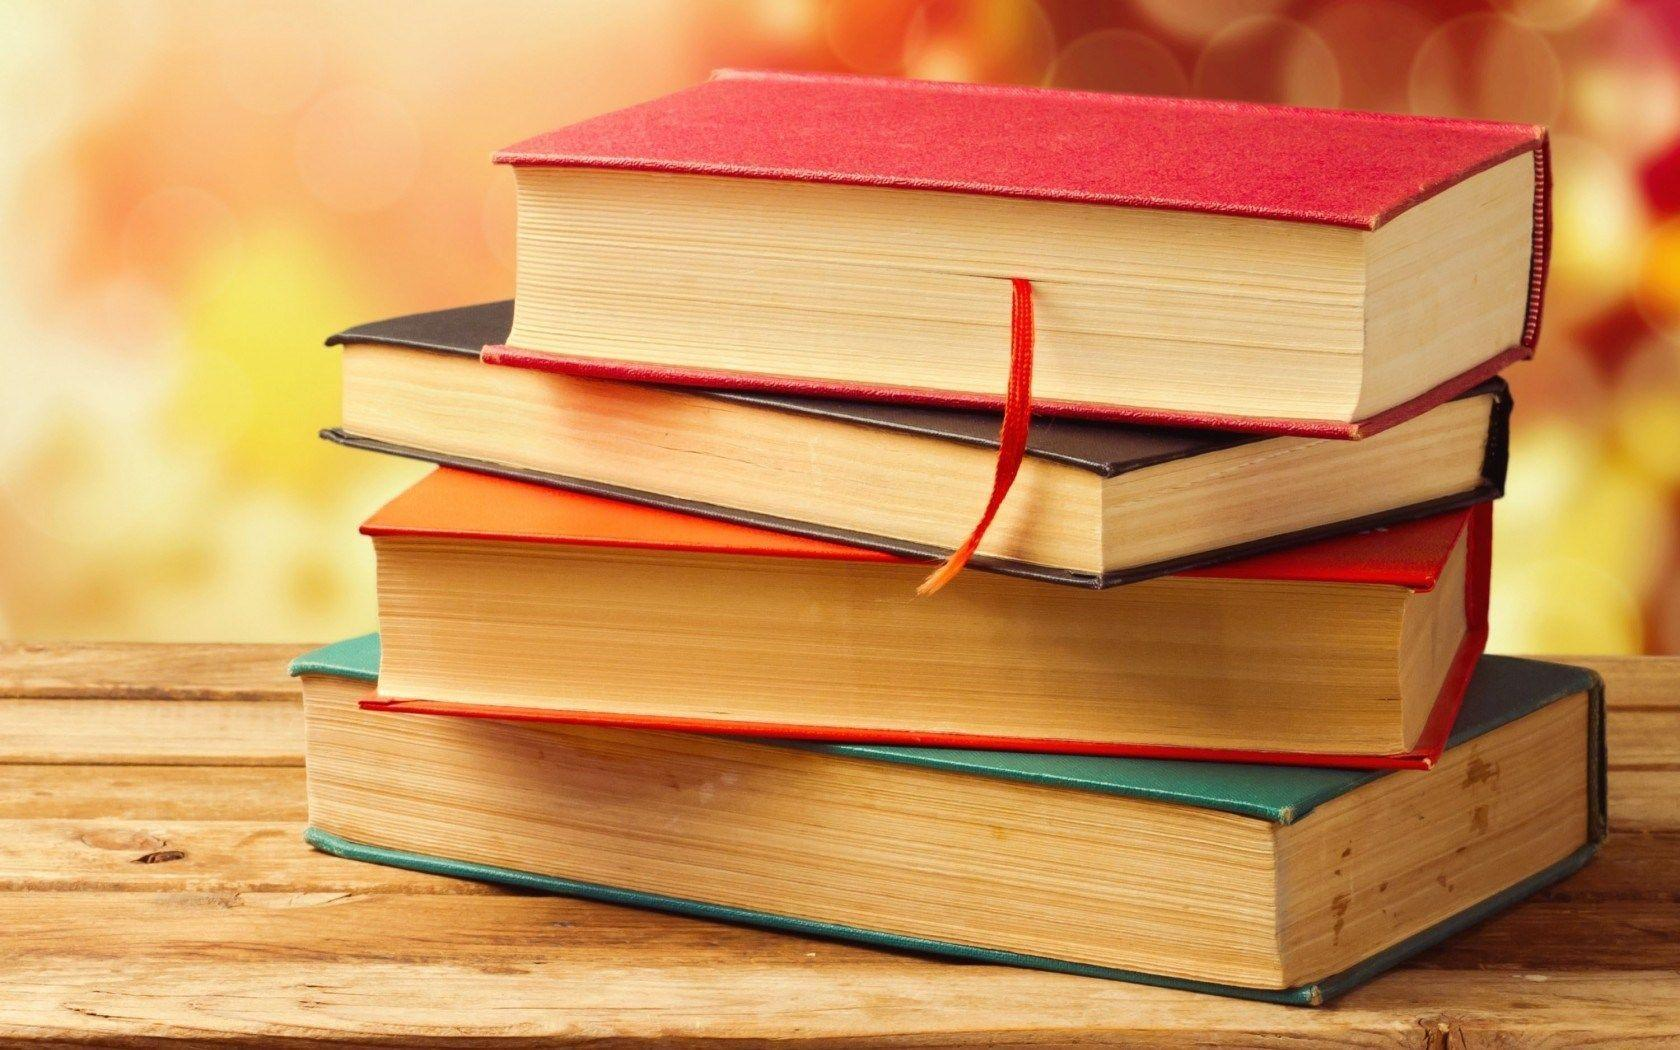 Books Hd Wallpapers Top Free Books Hd Backgrounds